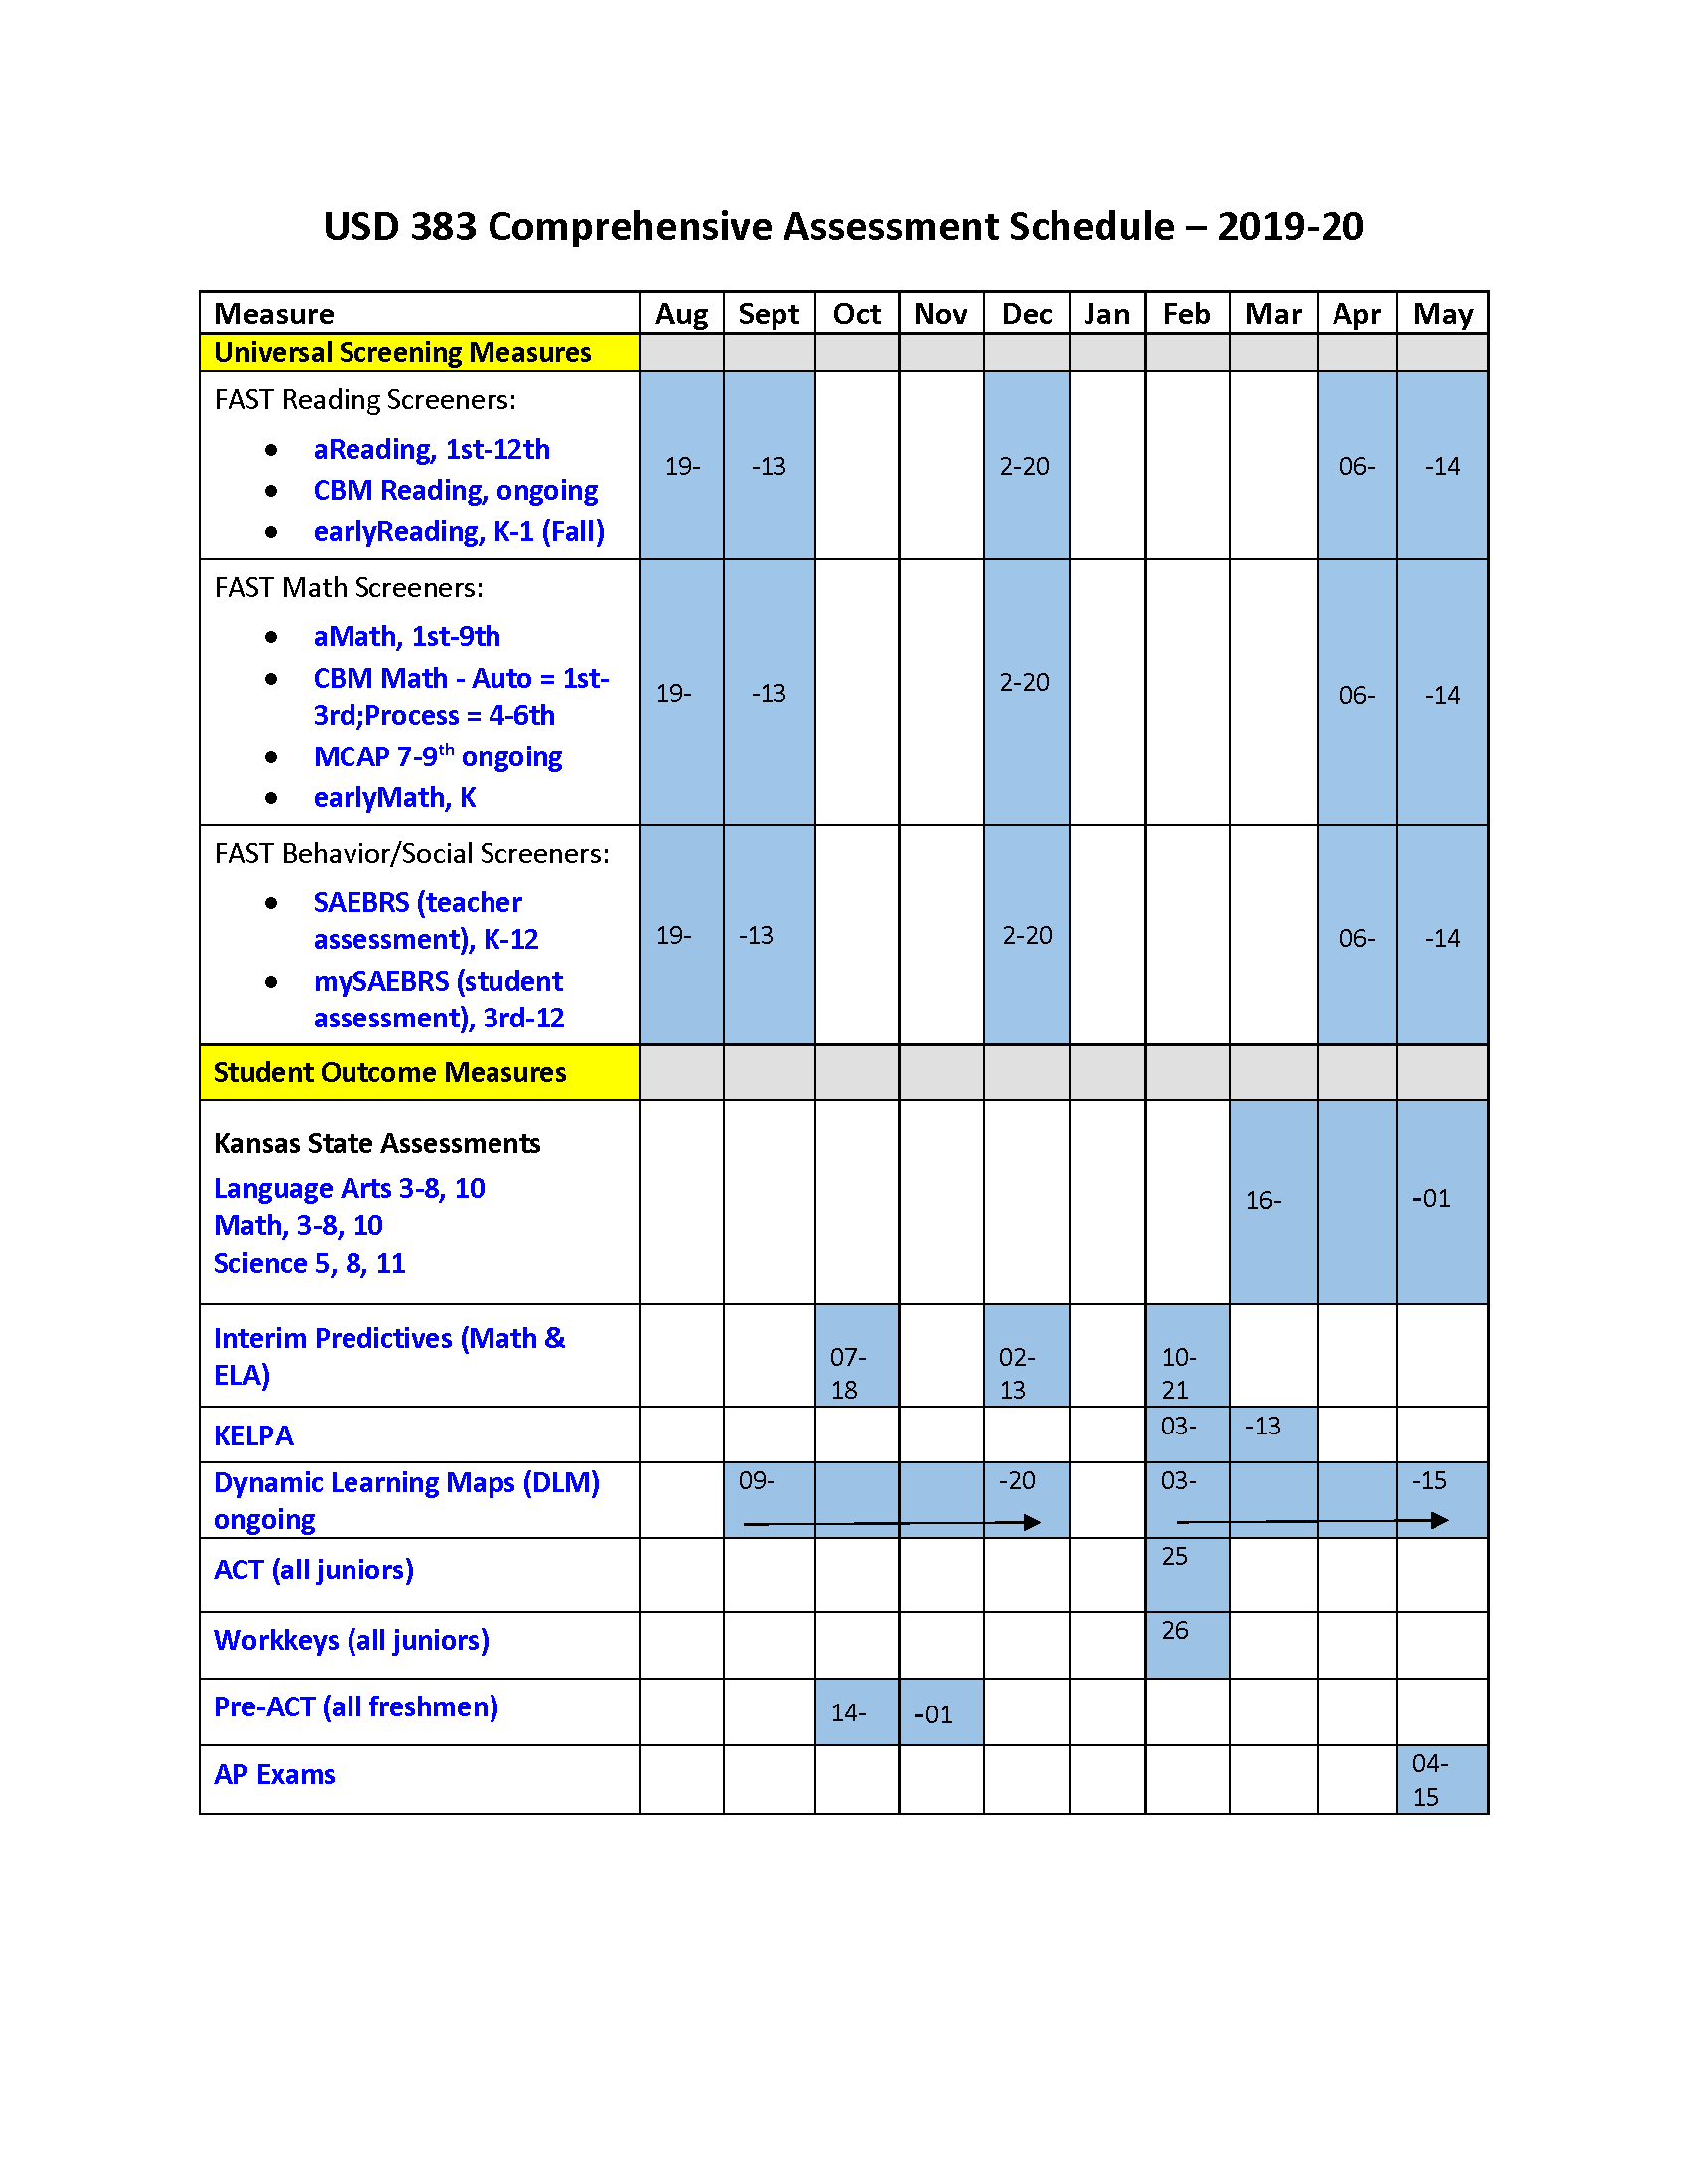 USD 383 Comprehensive Assessment Schedule 2019-20